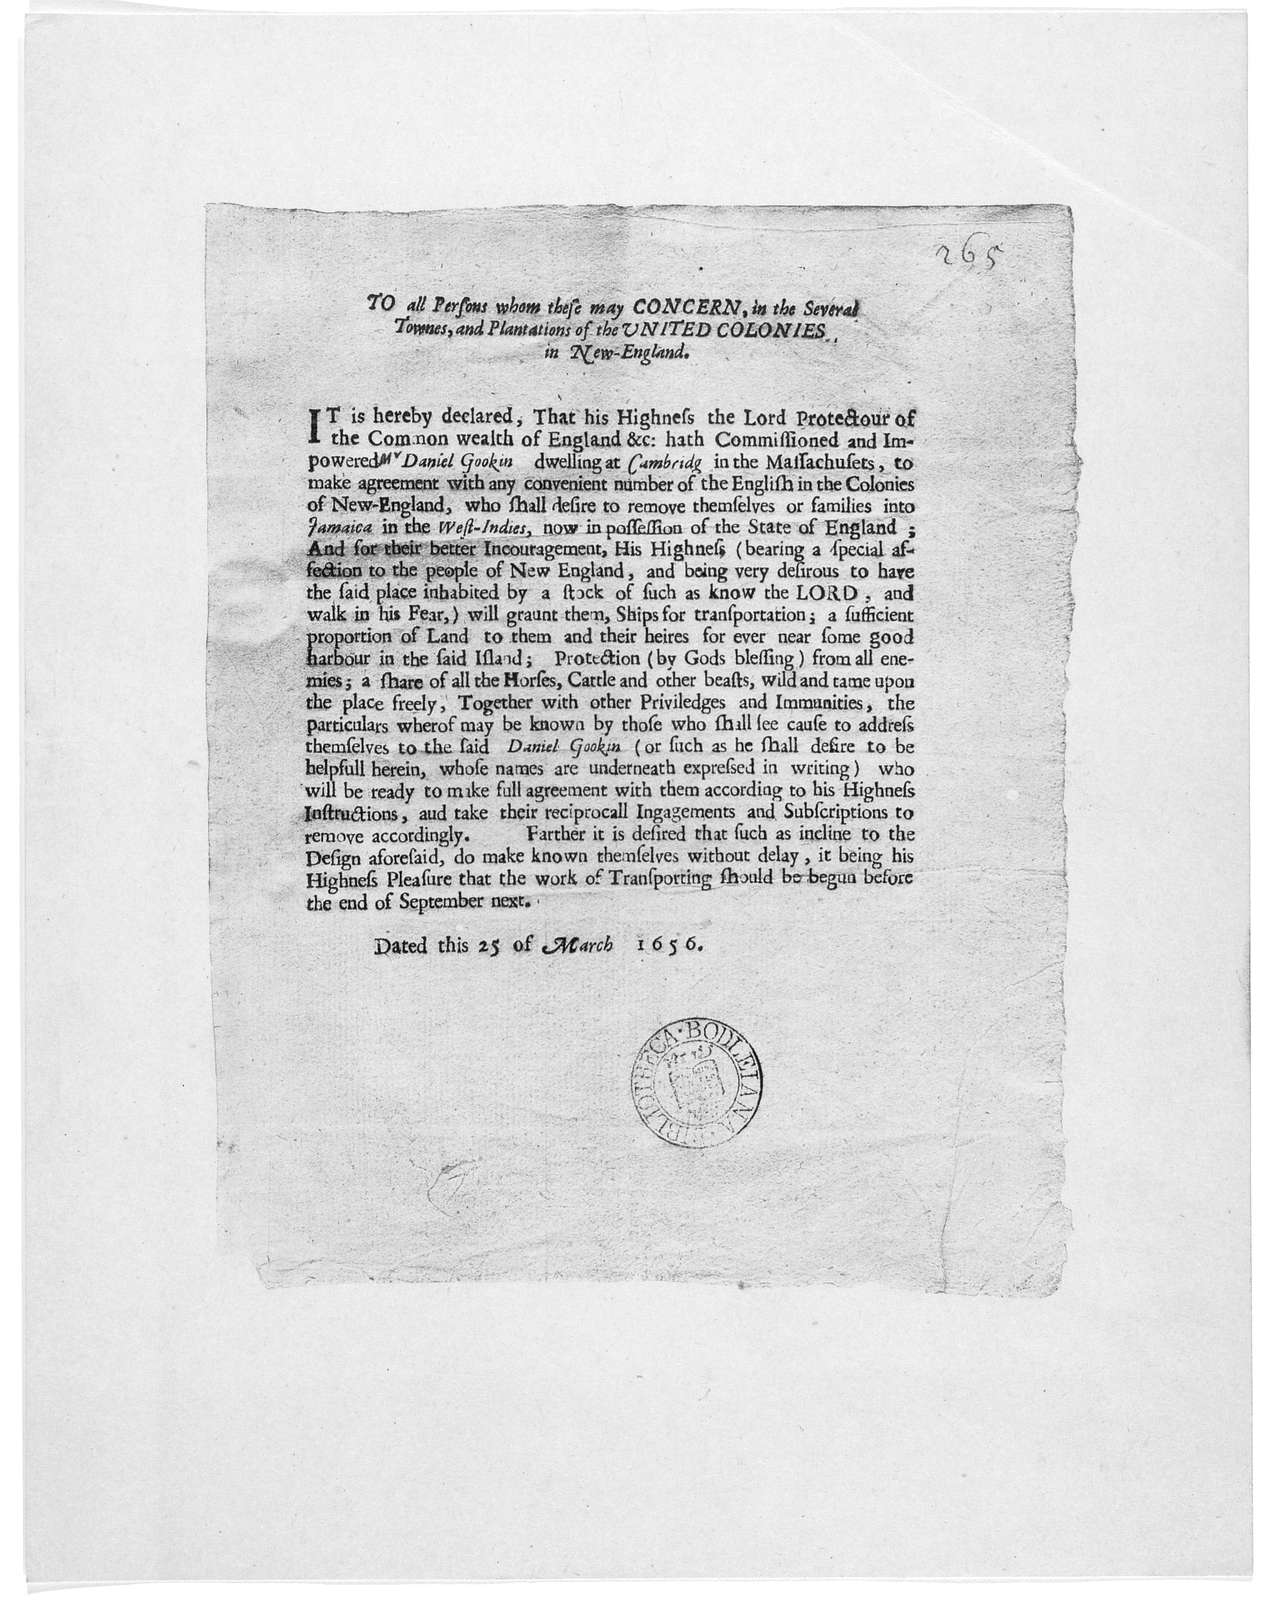 To all persons whom these may concern in the several townes, and plantations of the United Colonies in New-England. It is hereby declared, that his highness the Lord Protectour of the Common wealth of England &c. hath commissioned and impowered